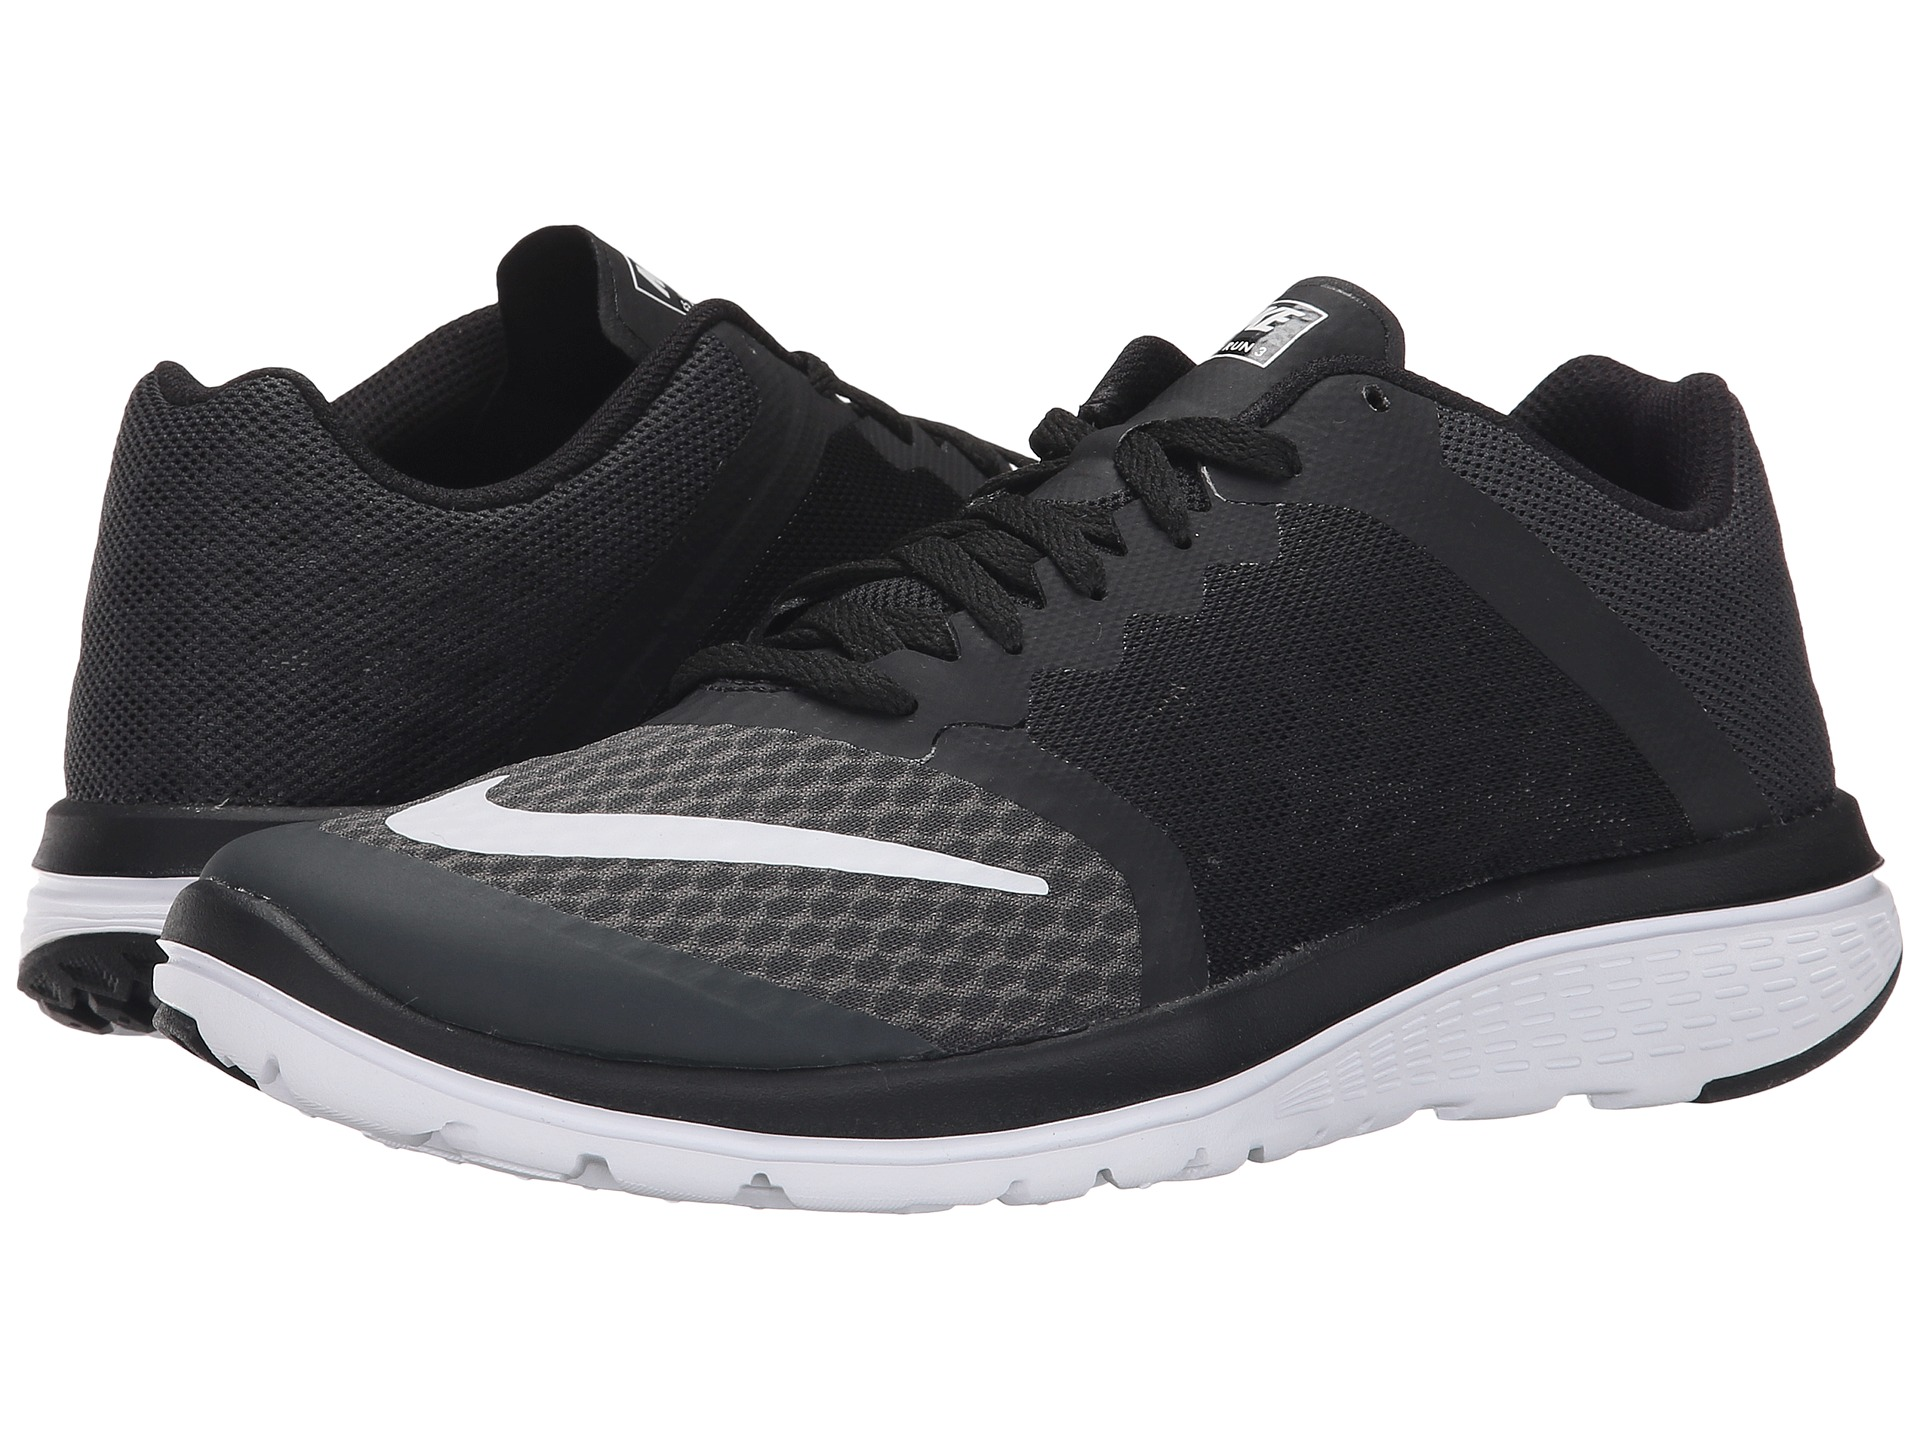 size 40 7147c 684e3 ... germany cheap women nike free run 2 find great deals on online for nike  5.0 v4